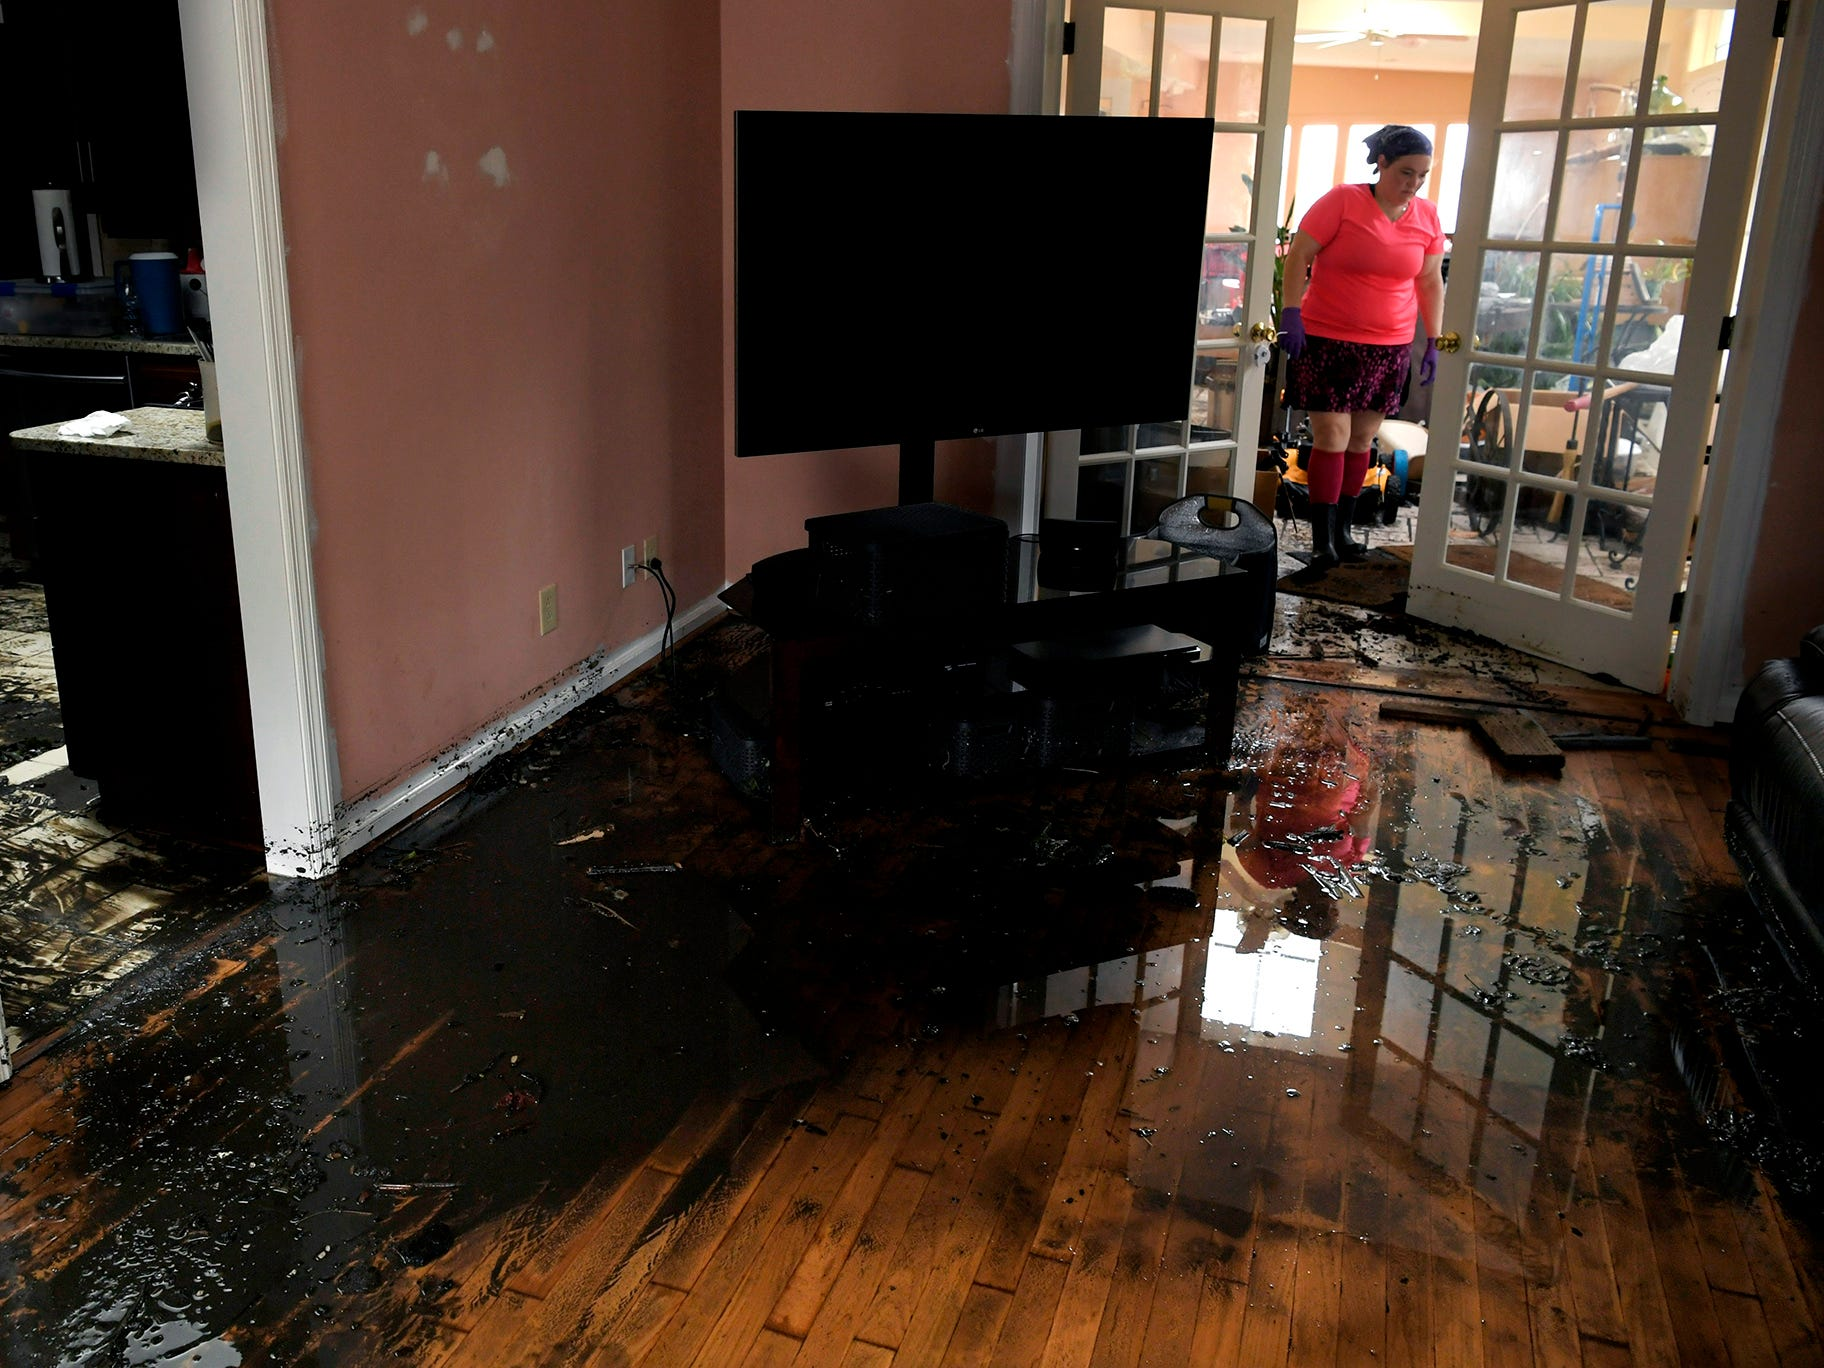 Cynthia Downes walks through her flooded home in New Bern, N.C. on Sept. 16, 2018.